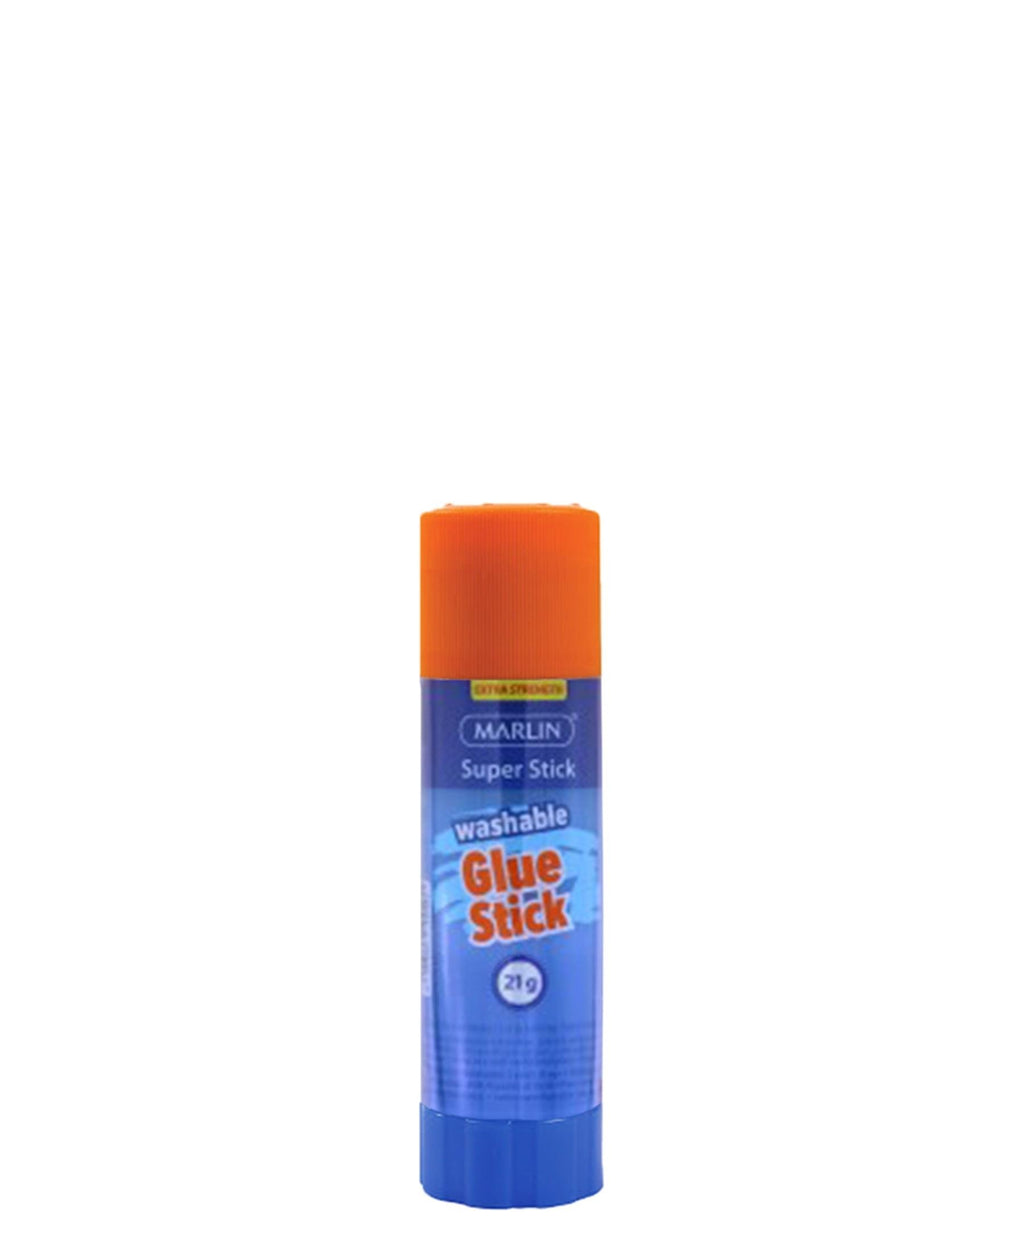 Marlin 20g Glue Stick - White